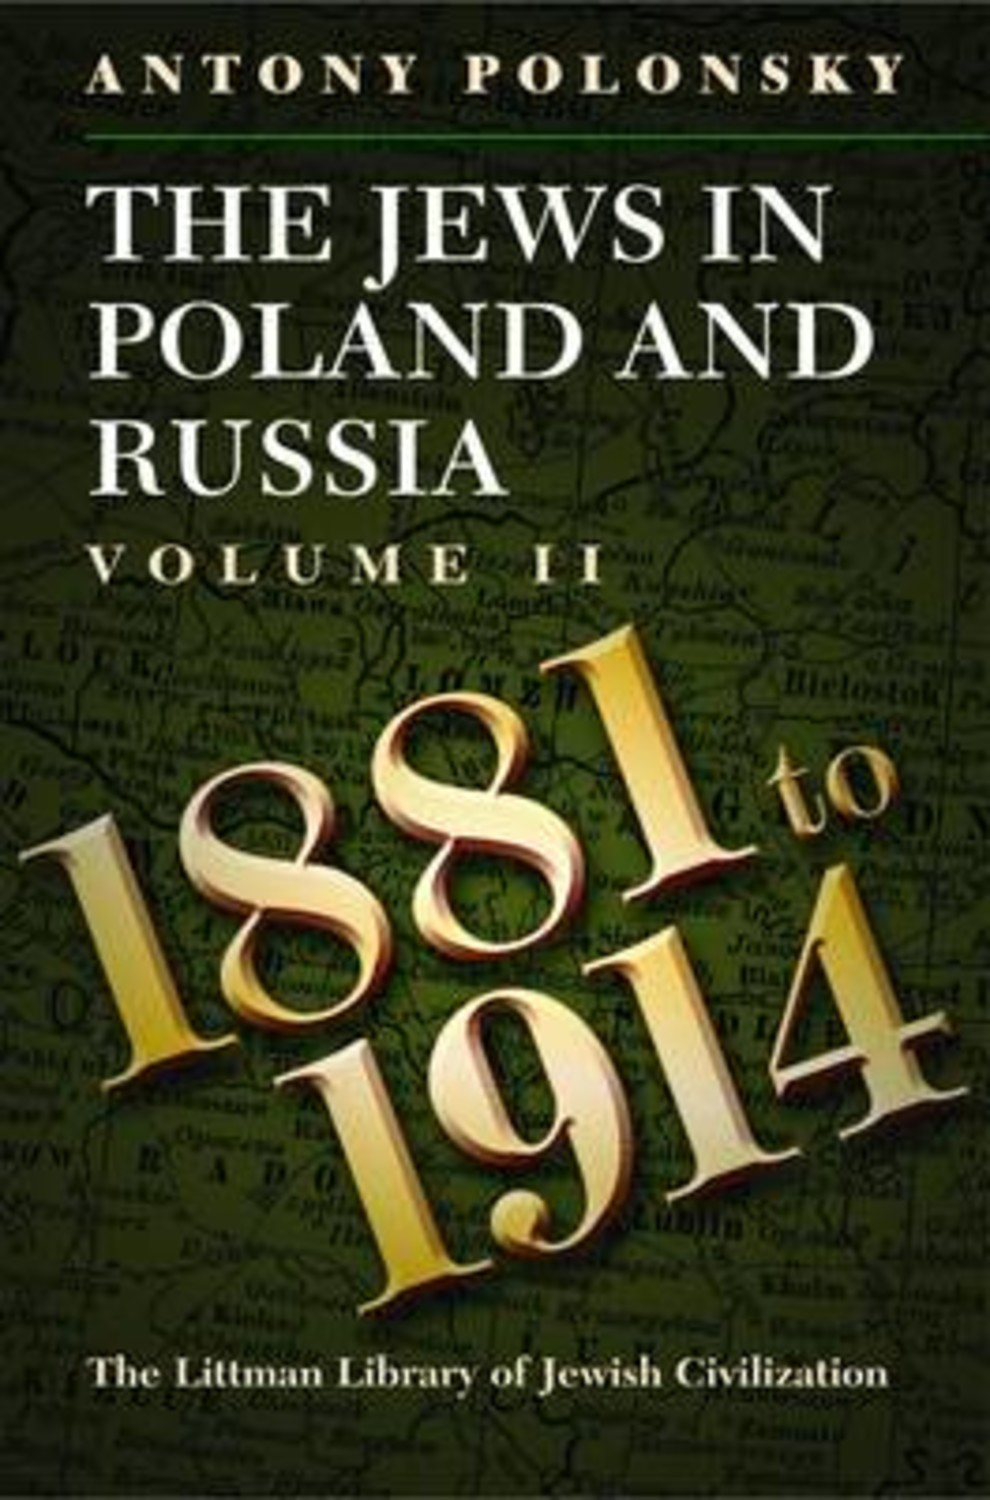 The Jews in Poland and Russia: 1881-1914 v. 2